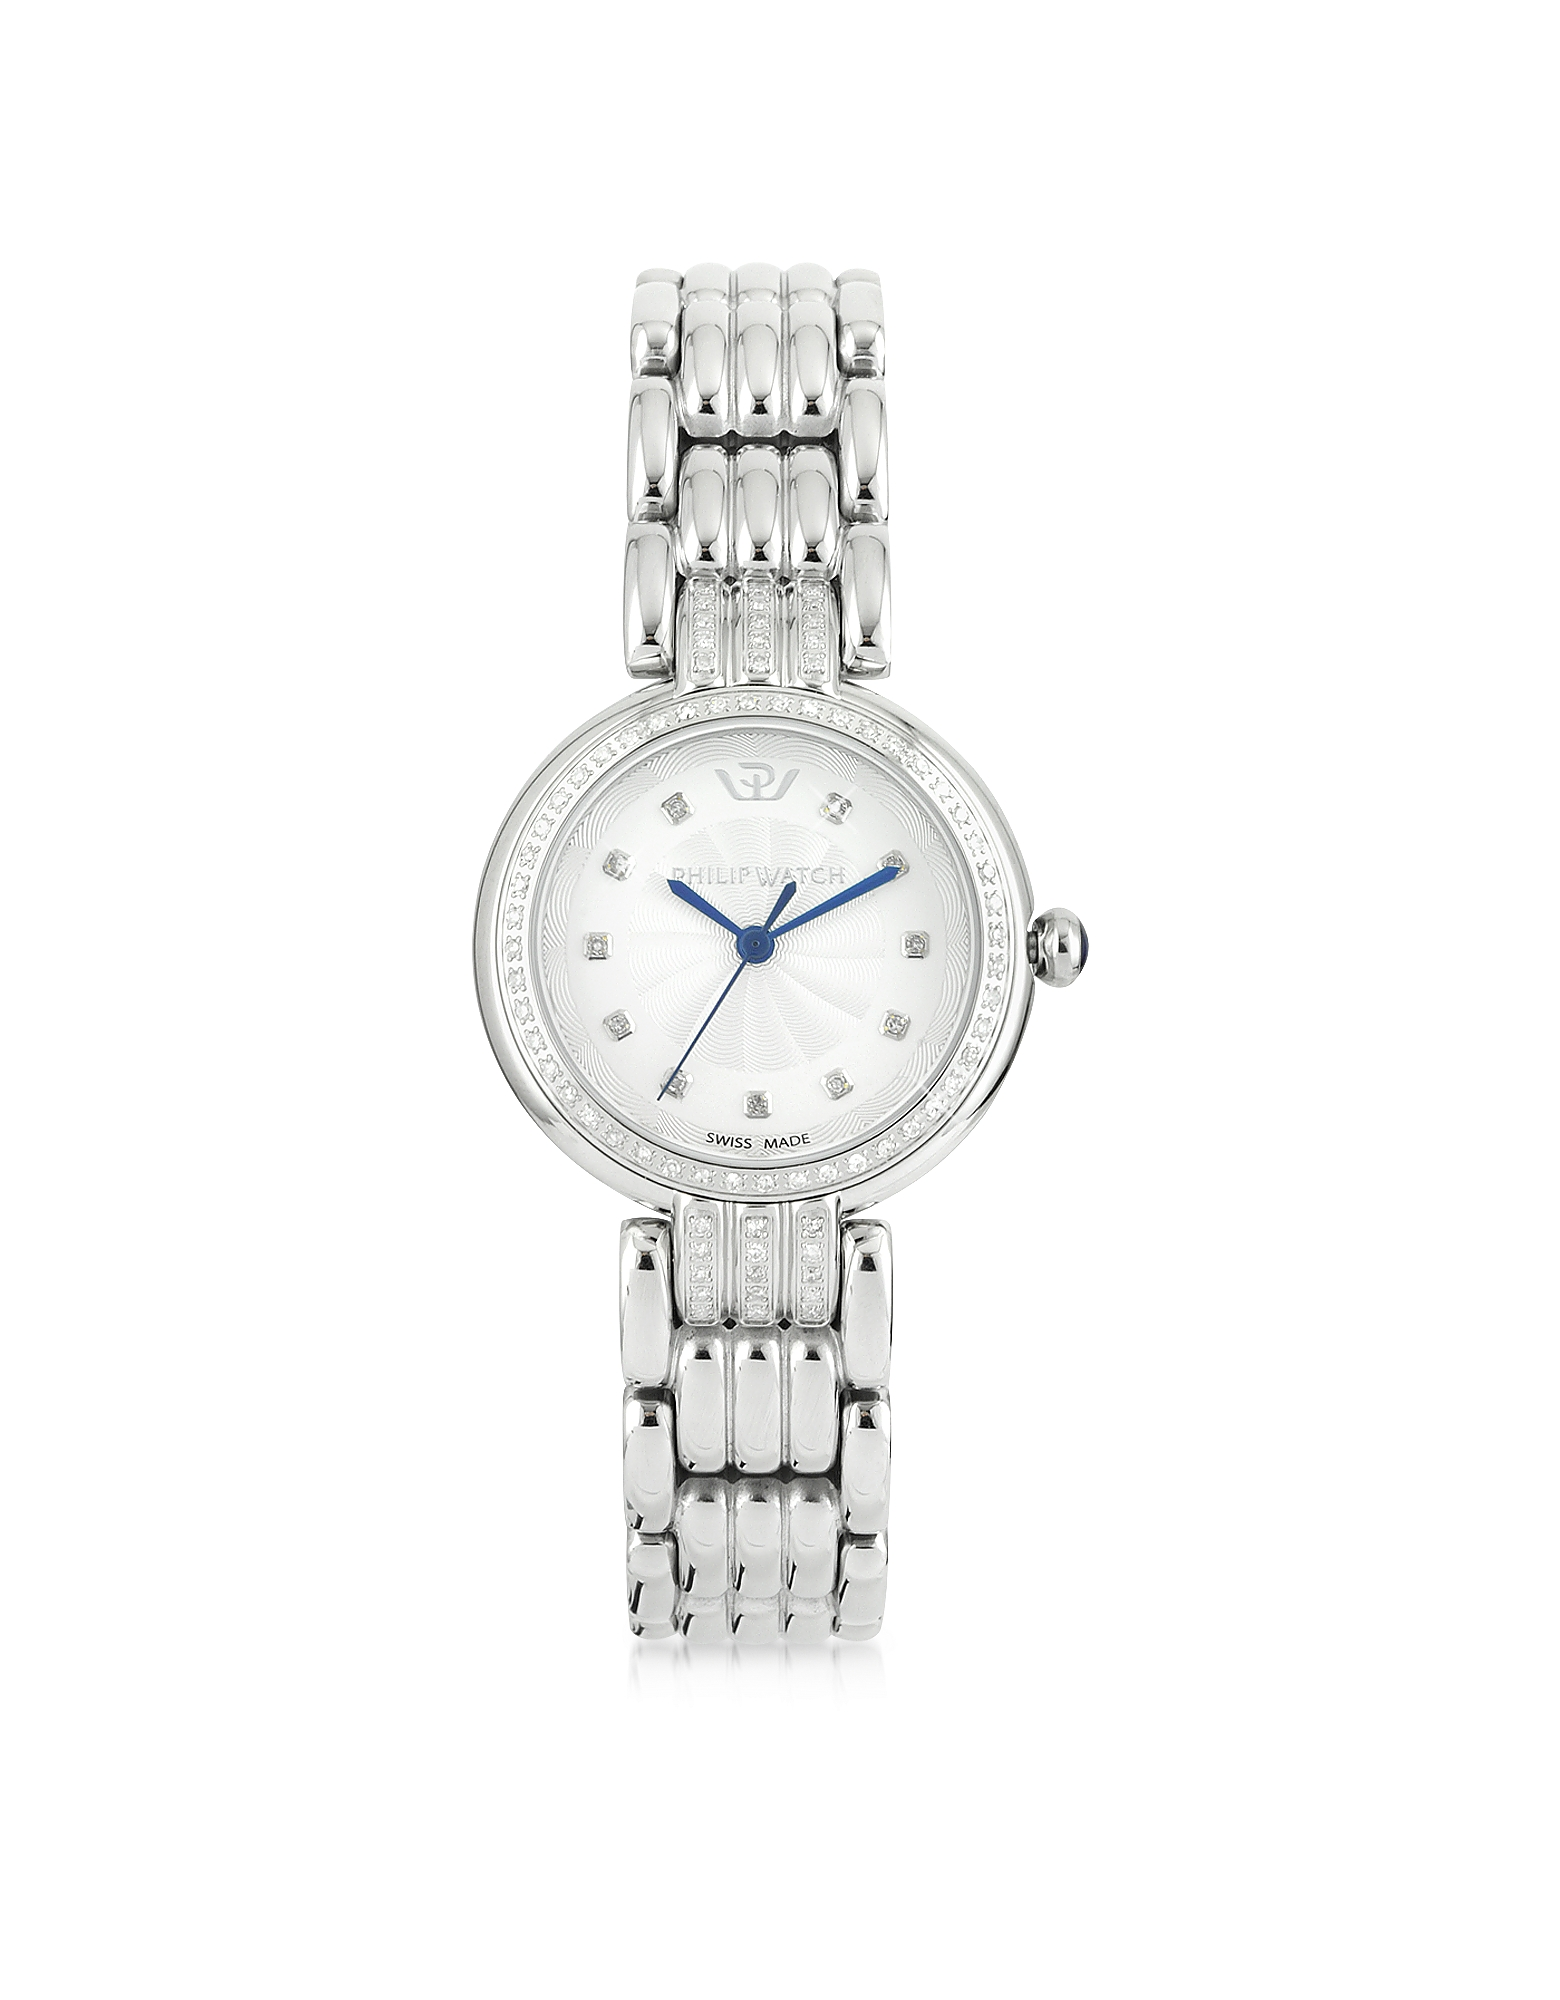 Philip Watch Women's Watches, Ginevra Heritage Diamond Women's Watch